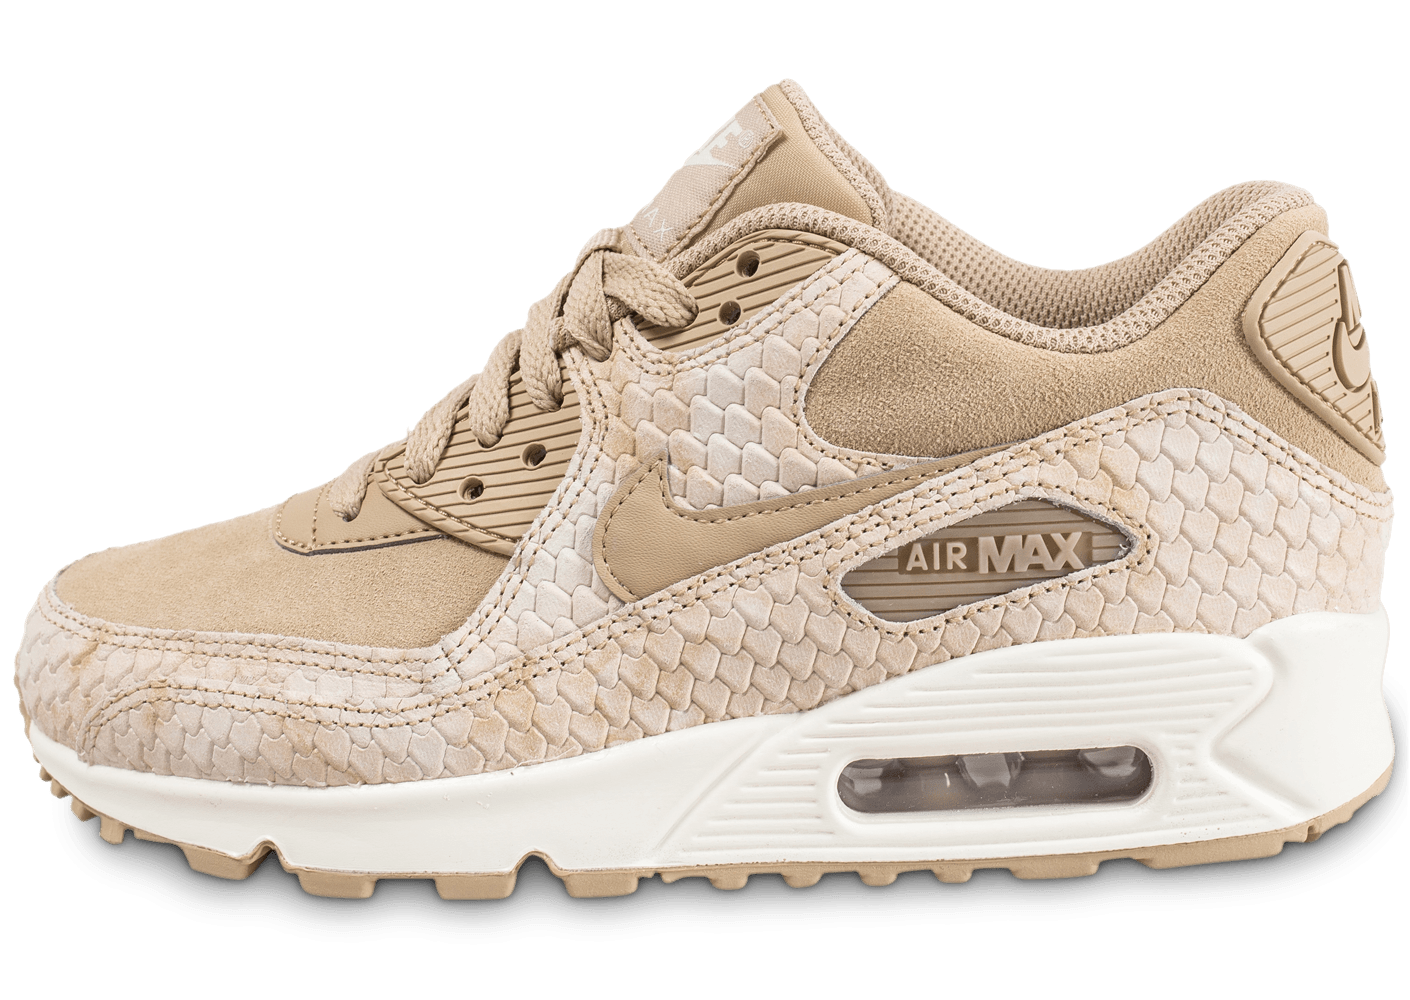 4cec51ee9a0 Baskets Pour Femme Nike Air Max 90 Ultra 2.0 W chaussures beige rose Code  article  SO55457101 Nike Air Max 90 beige clair et jaune gomme et blanche  femme ...